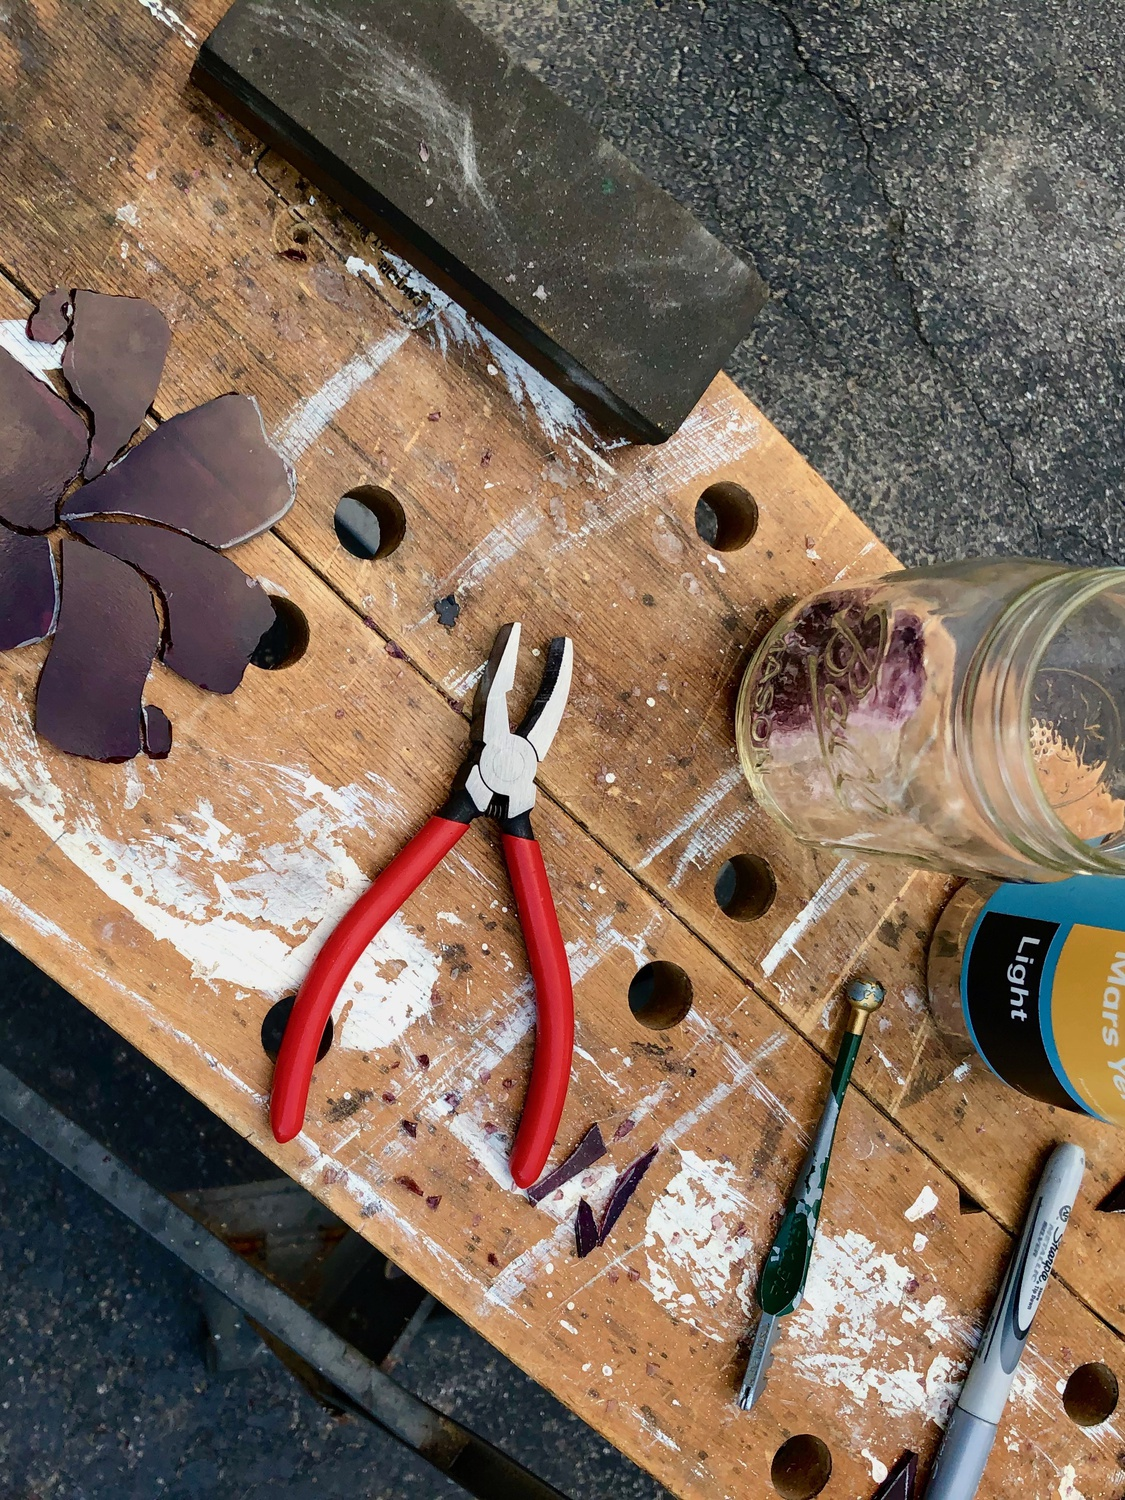 Gale constructed a soldering workshop in her garage to produce the stained glass art she had hoped to create on campus.